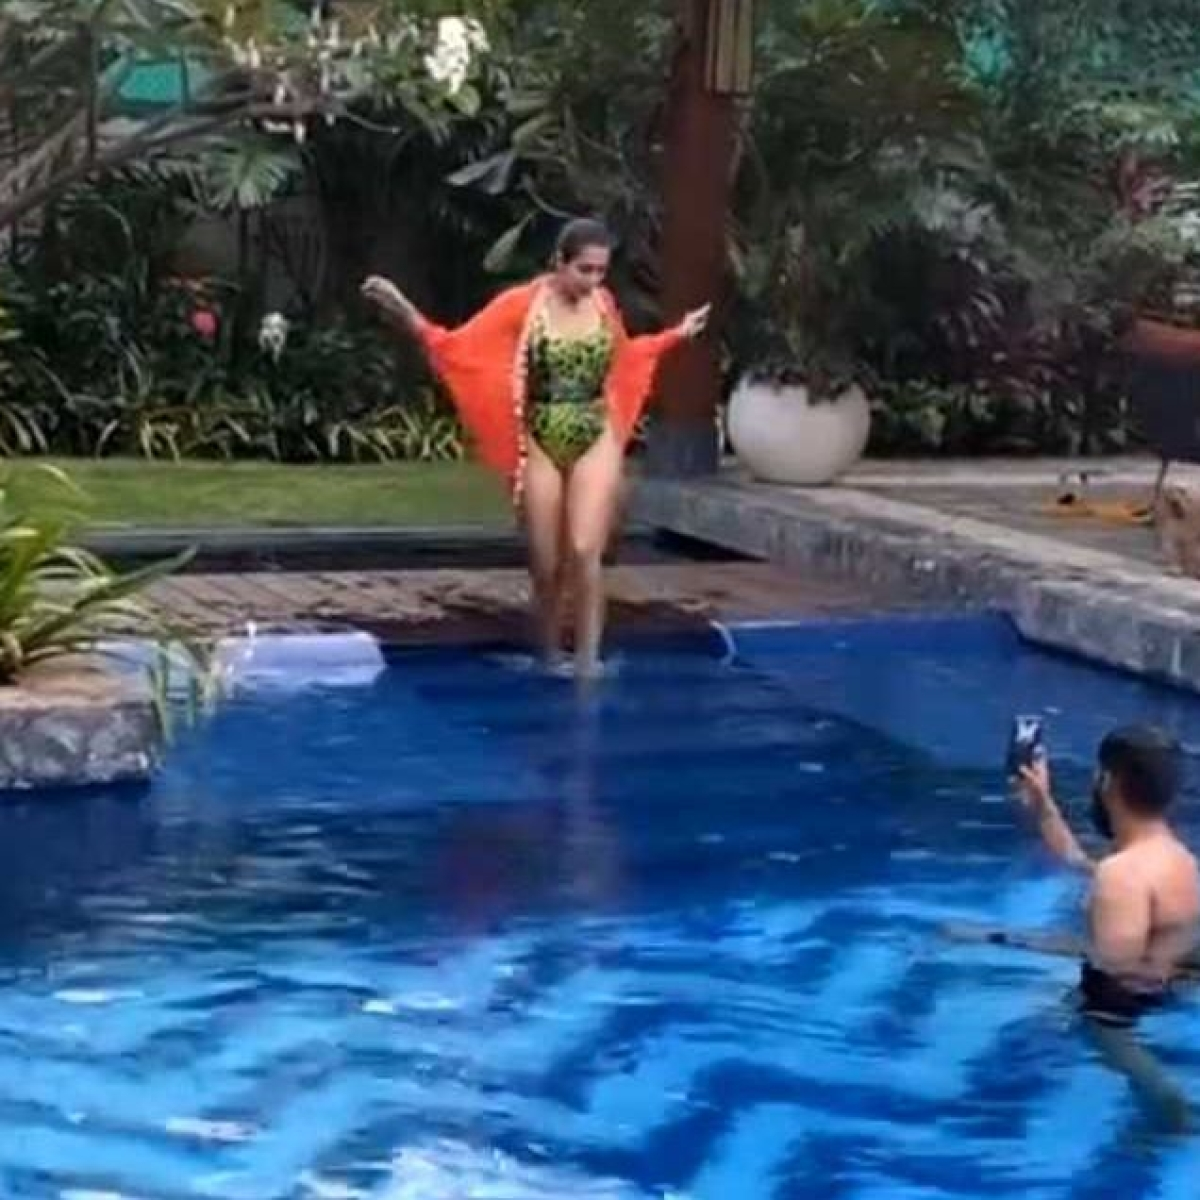 Arjun Kapoor turns 'pool photographer' for swimsuit-clad Malaika Arora